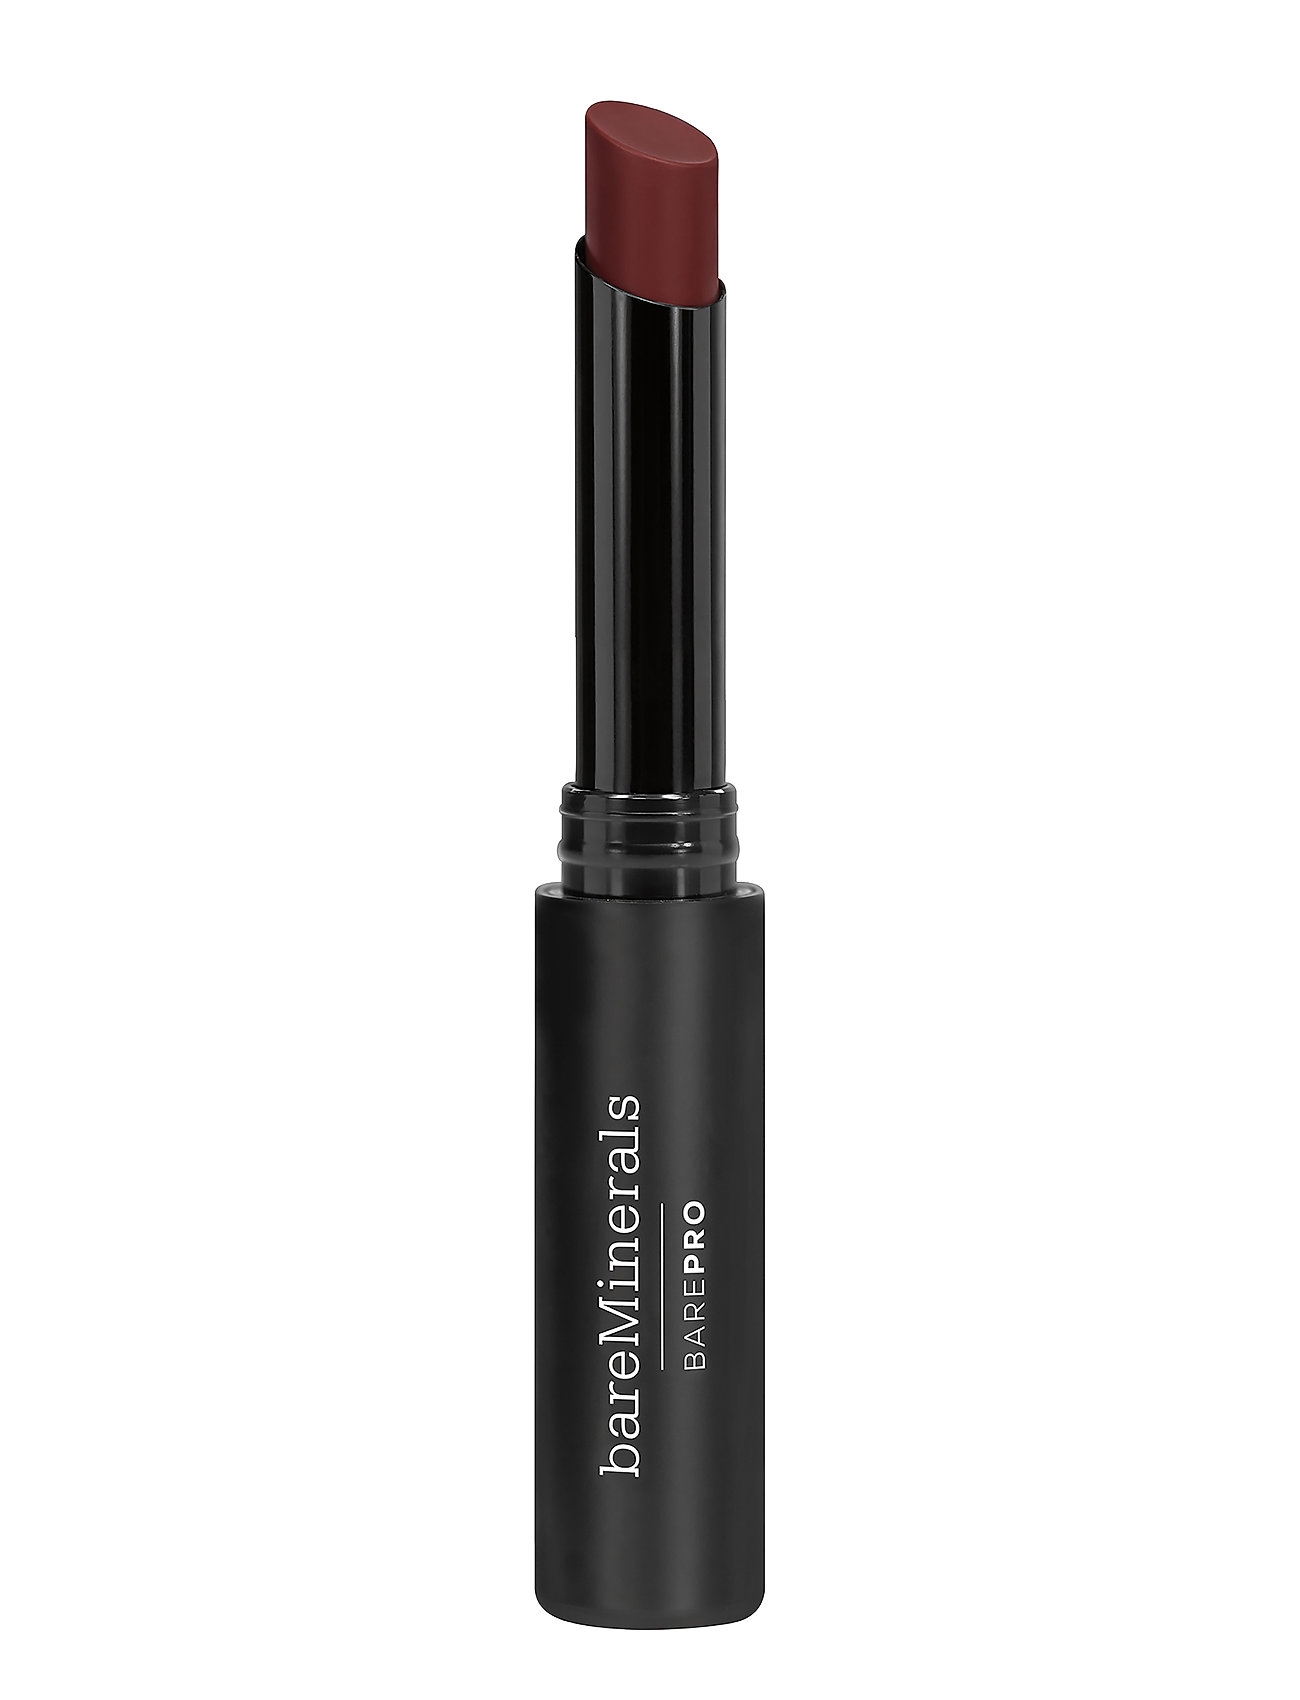 Image of Barepro Longwear Lipstick Raisin Læbestift Makeup Rød BareMinerals (3138616957)